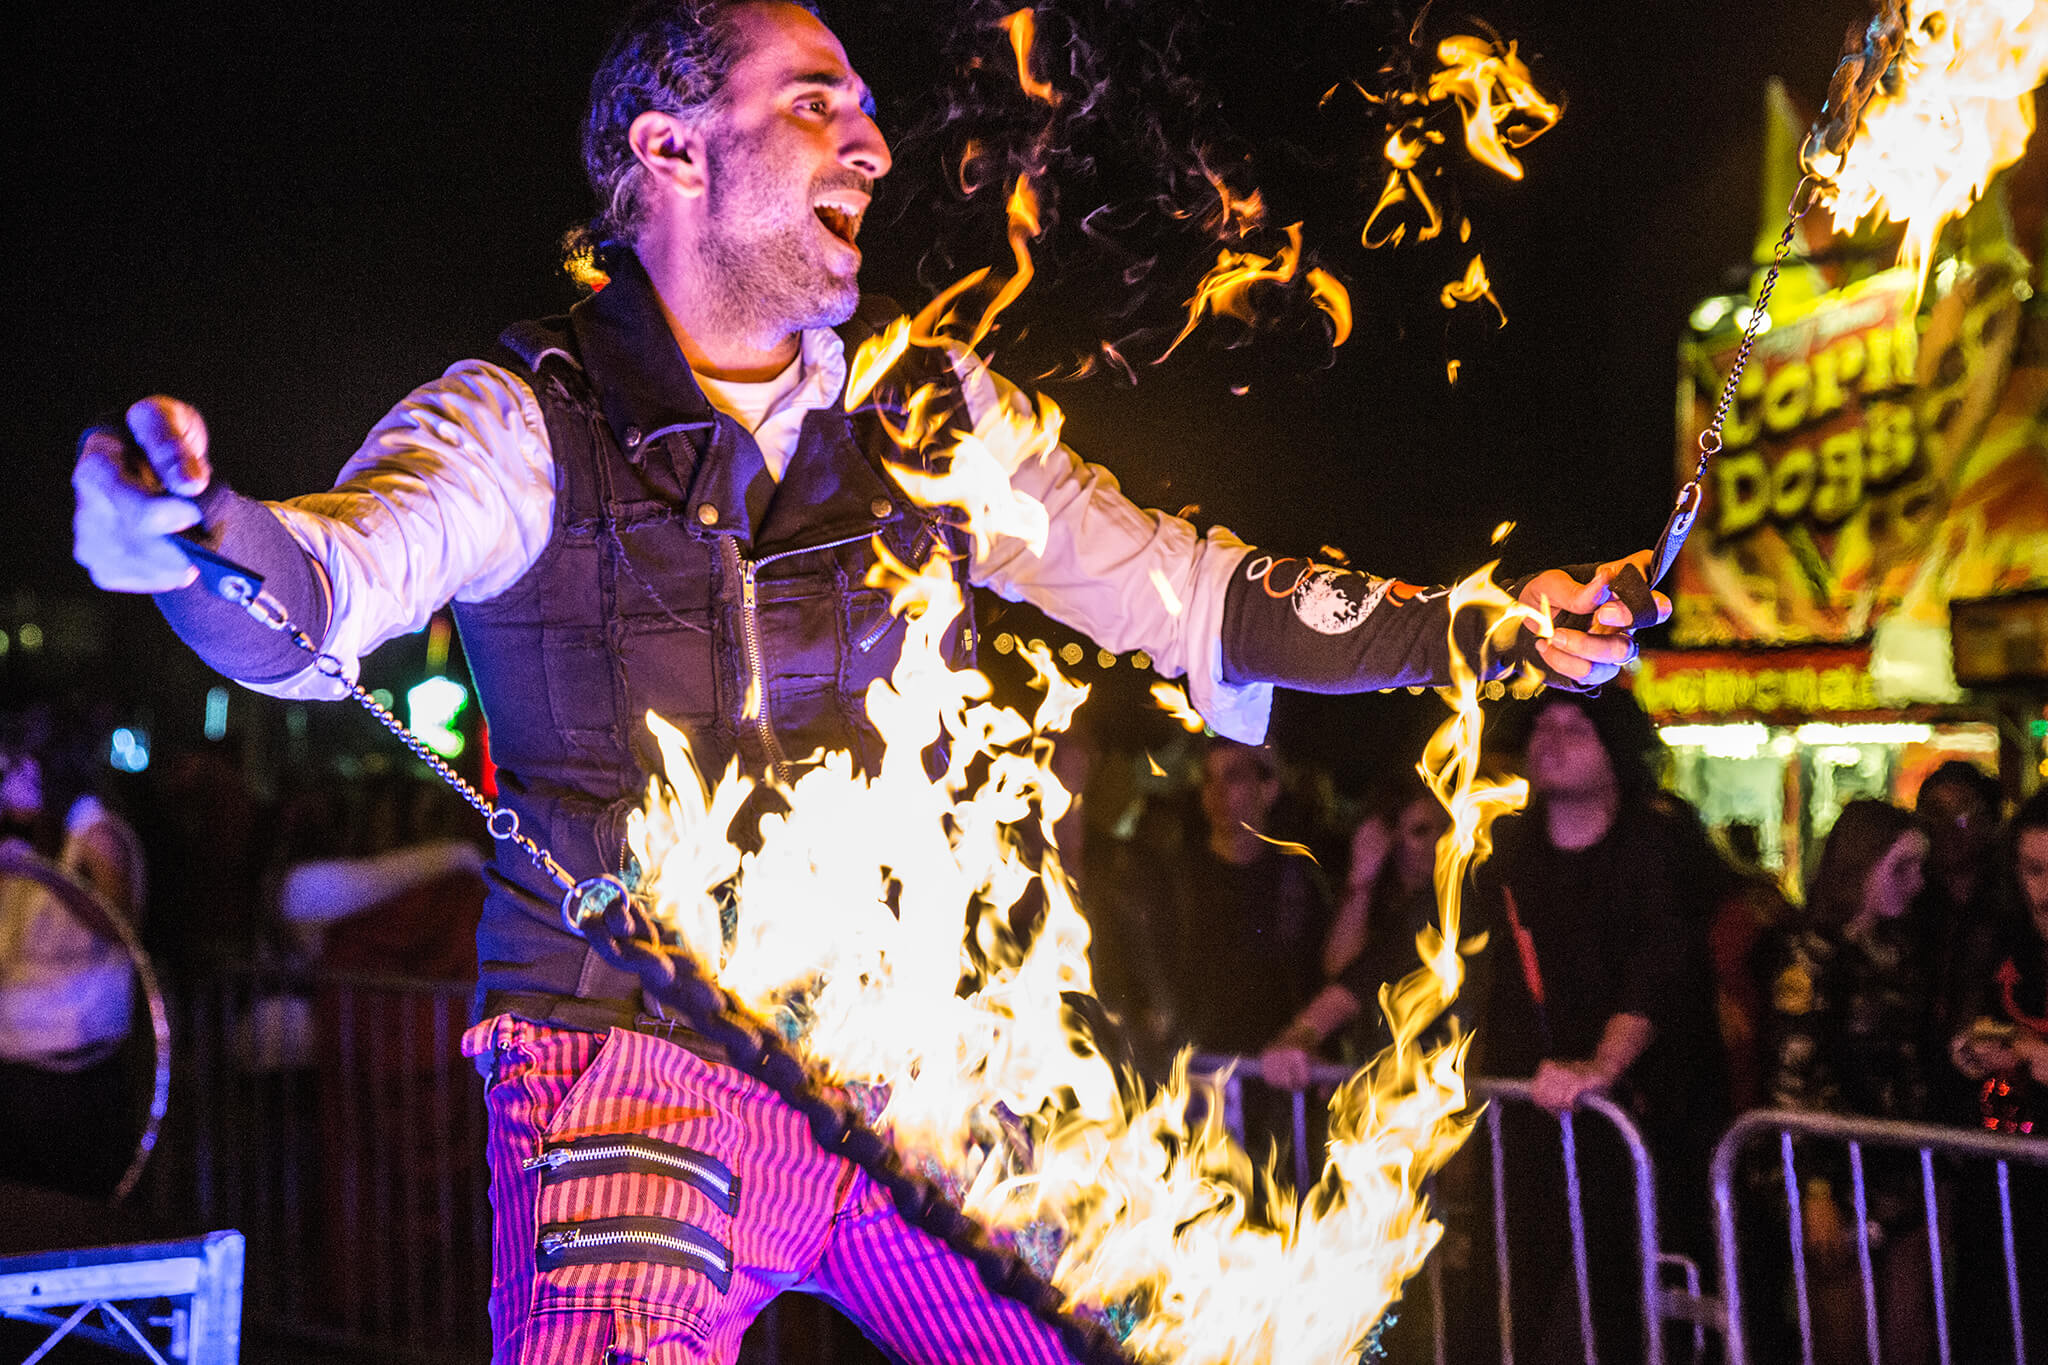 costumed performer getting fired up